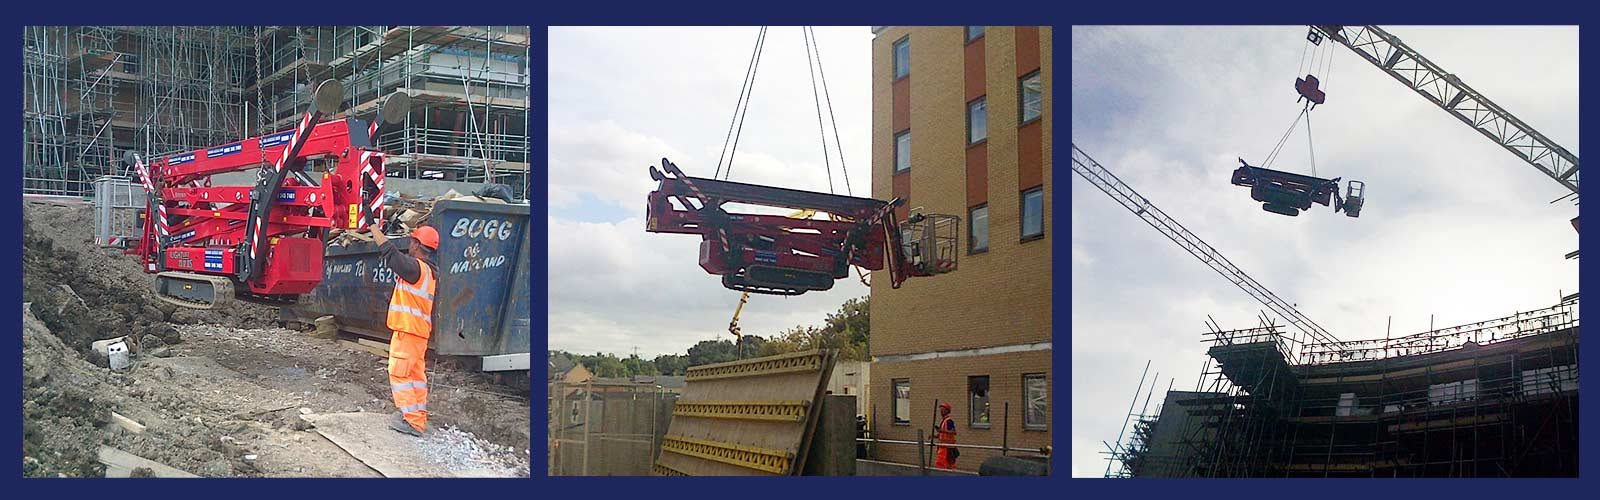 turner_access_hire_lift